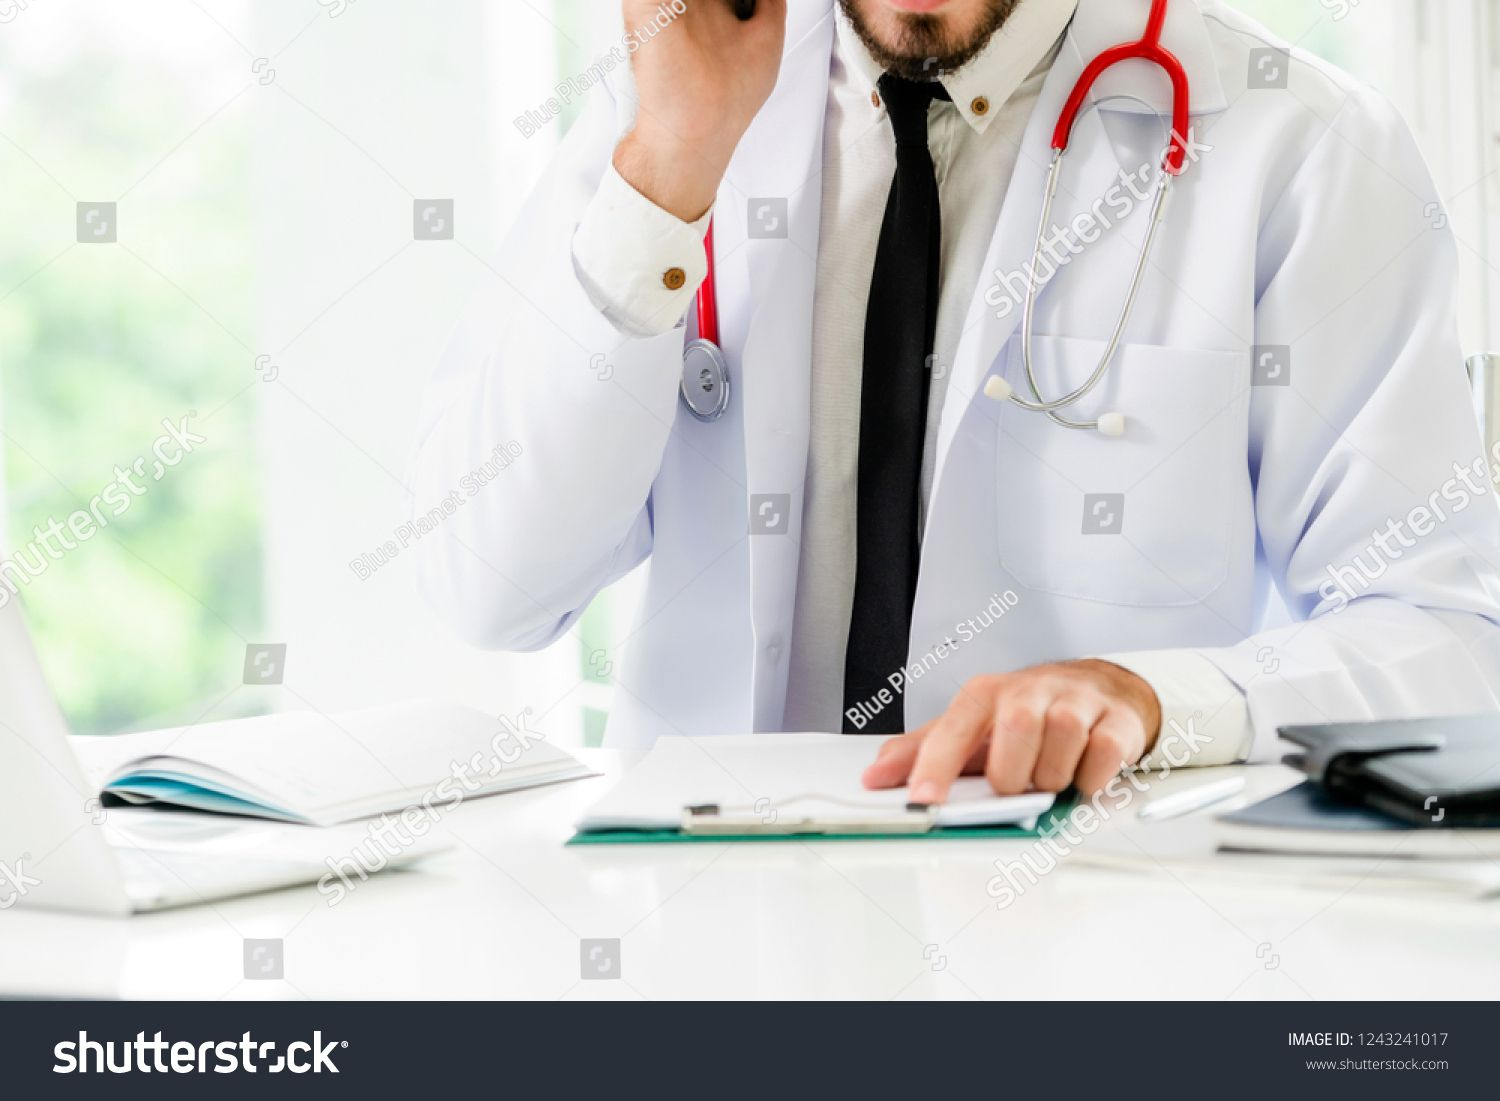 Doctor At Office Table In The Hospital With Patient Health File Medical And Healthcare Concept Ad Ad Hospital Pati In 2020 Doctor Office Hospital Photo Editing